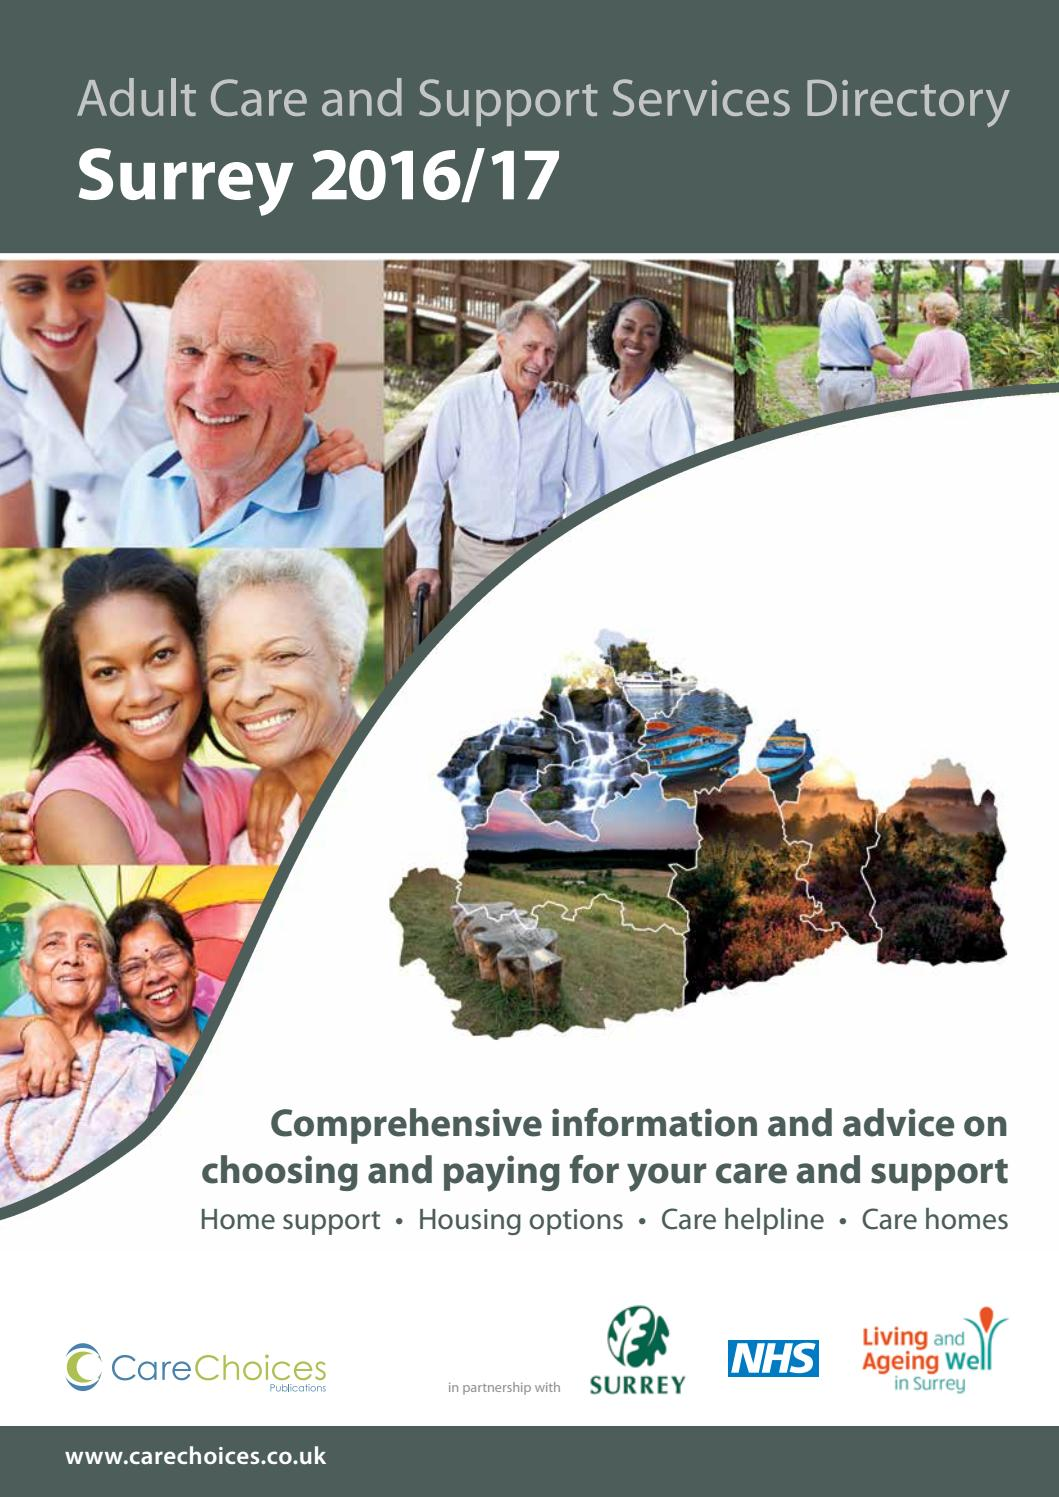 Surrey 2016/17 Adult Care and Support Services Directory by Care Choices  Ltd - issuu